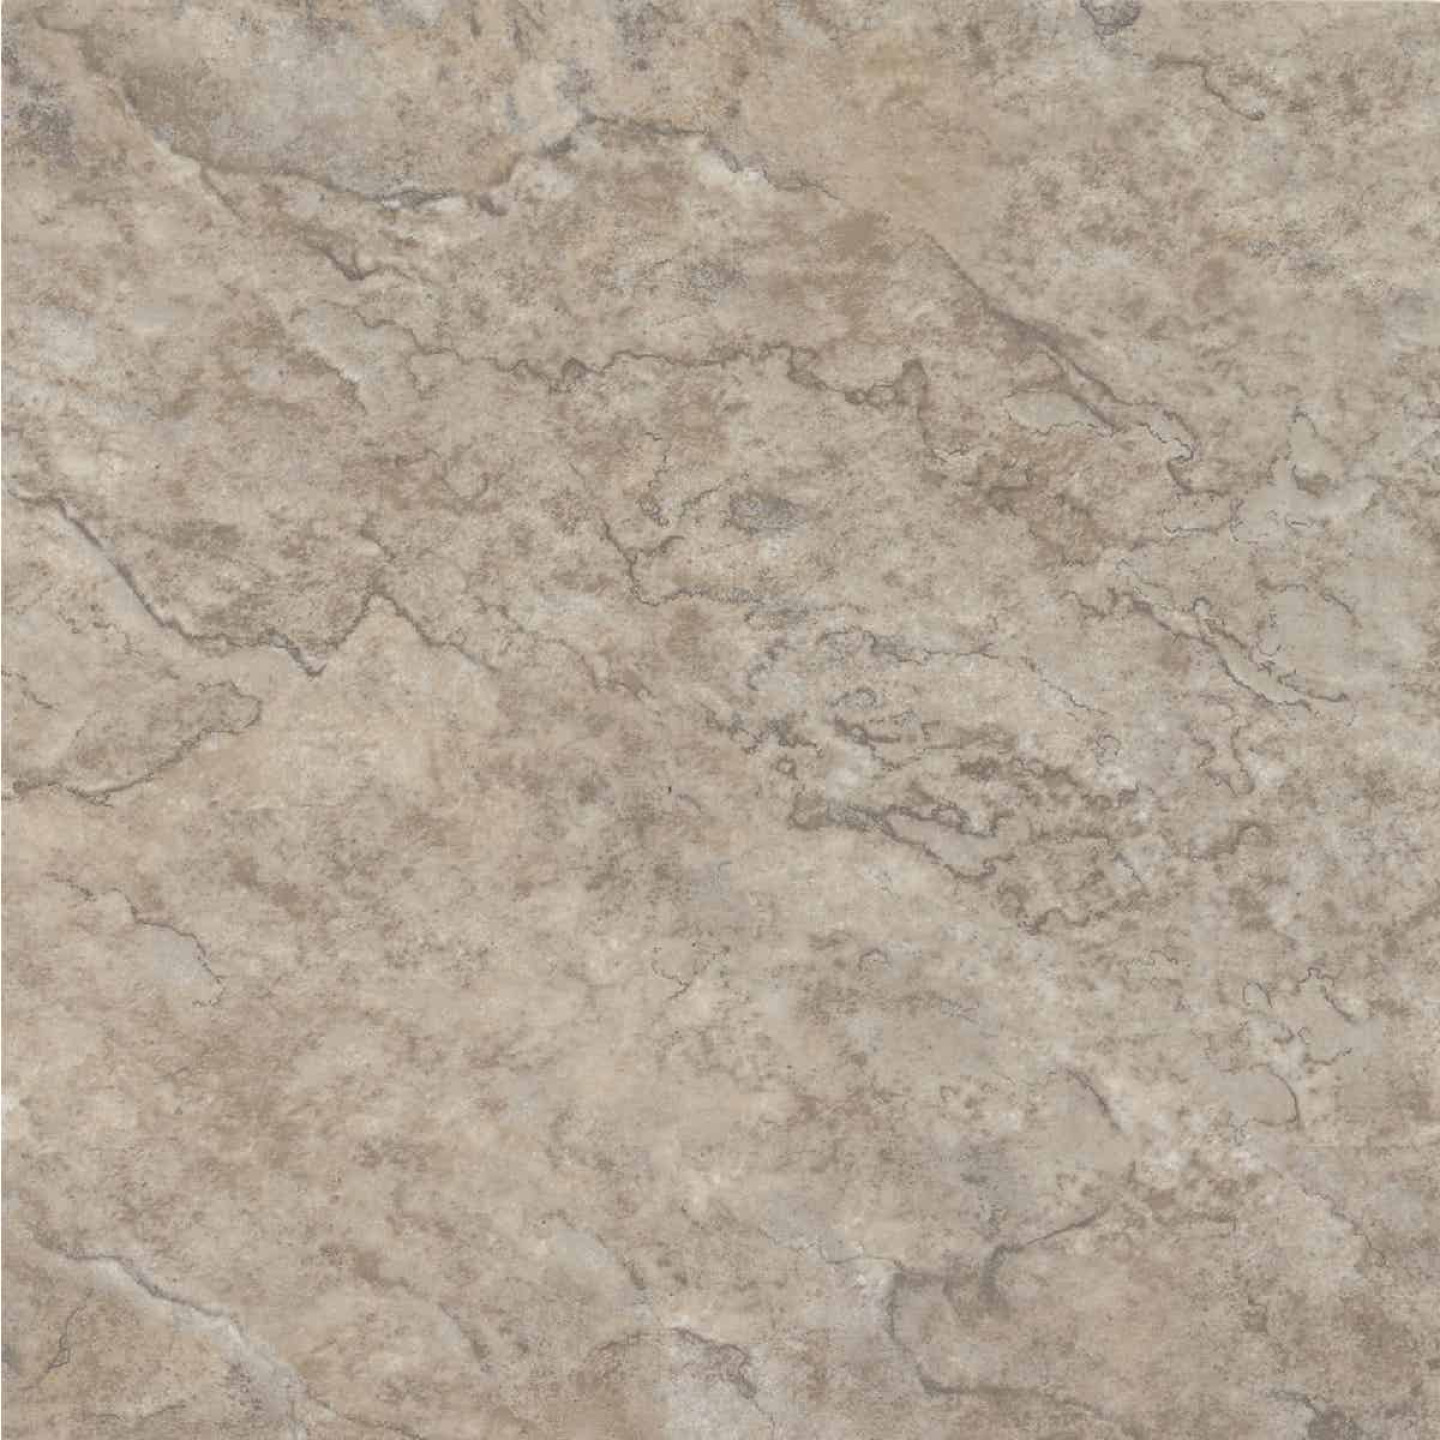 Armstrong Units Collection Ridgeway II Beige 12 In. x 12 In. Vinyl Floor Tile (45 Sq. Ft./Box) Image 1